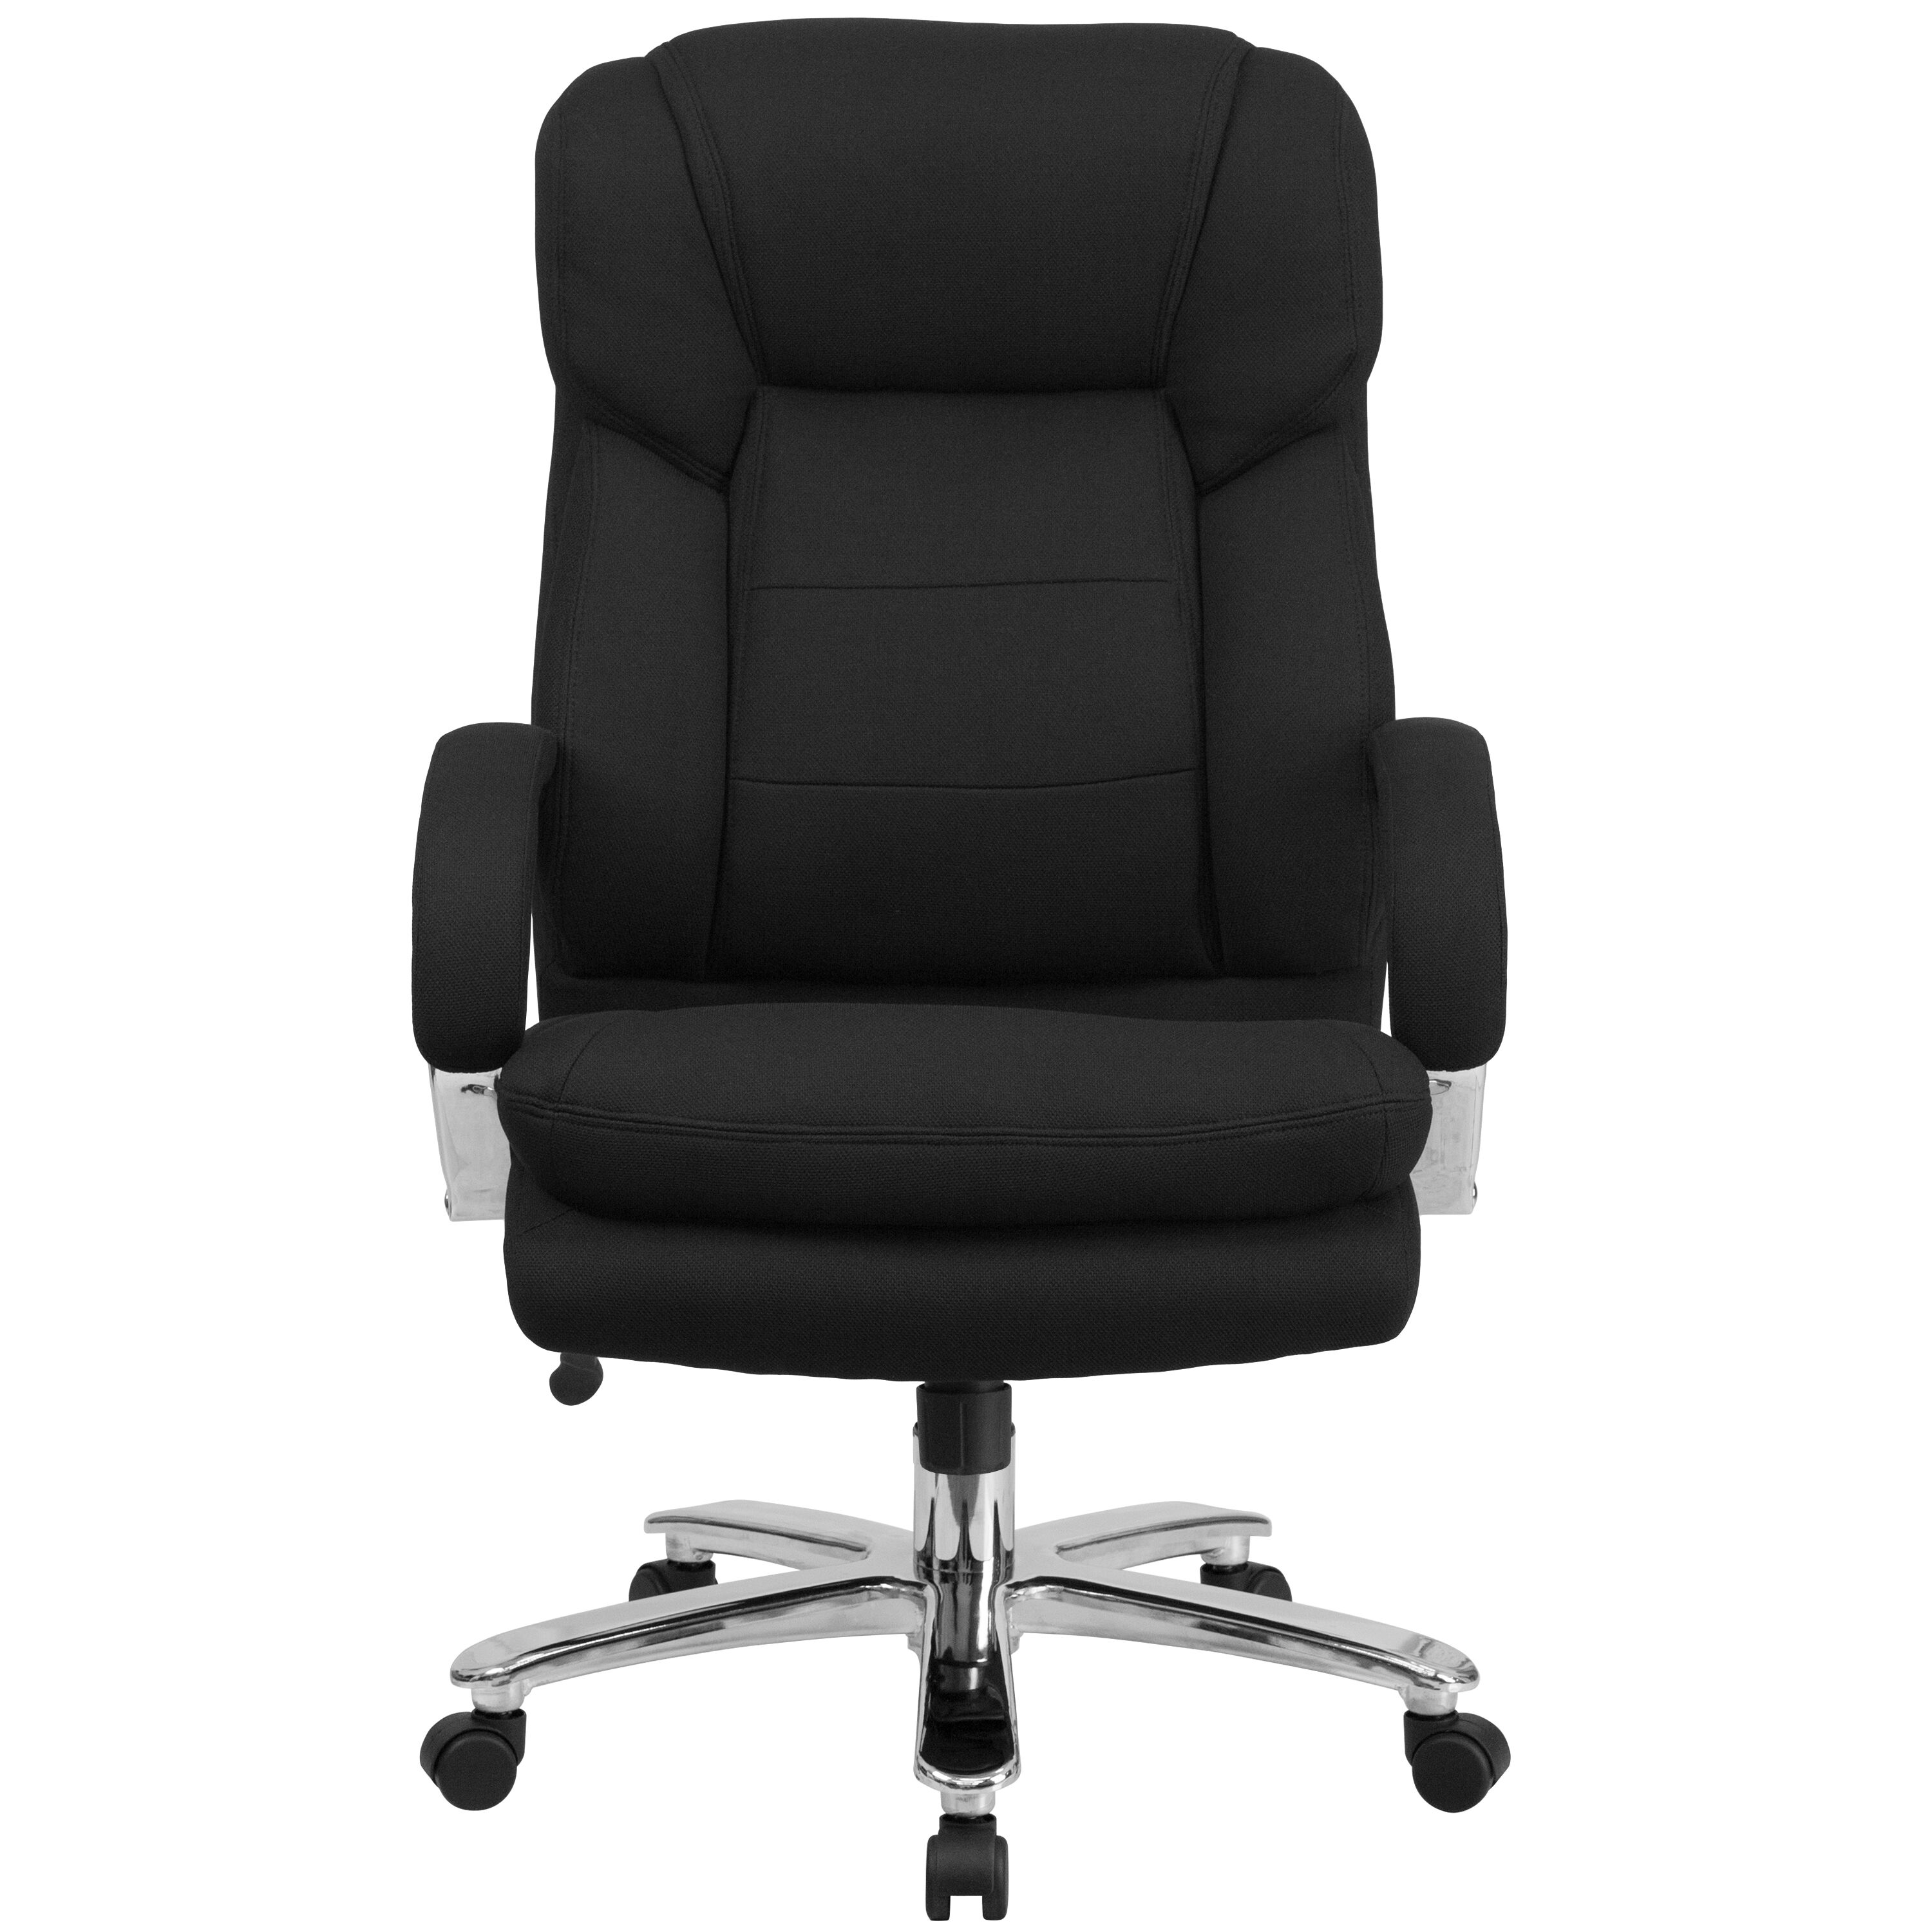 e186cd63e03 HERCULES Series 24 7 Intensive Use Big   Tall 500 lb. Rated Black Fabric  Executive Ergonomic Office Chair with Loop Arms